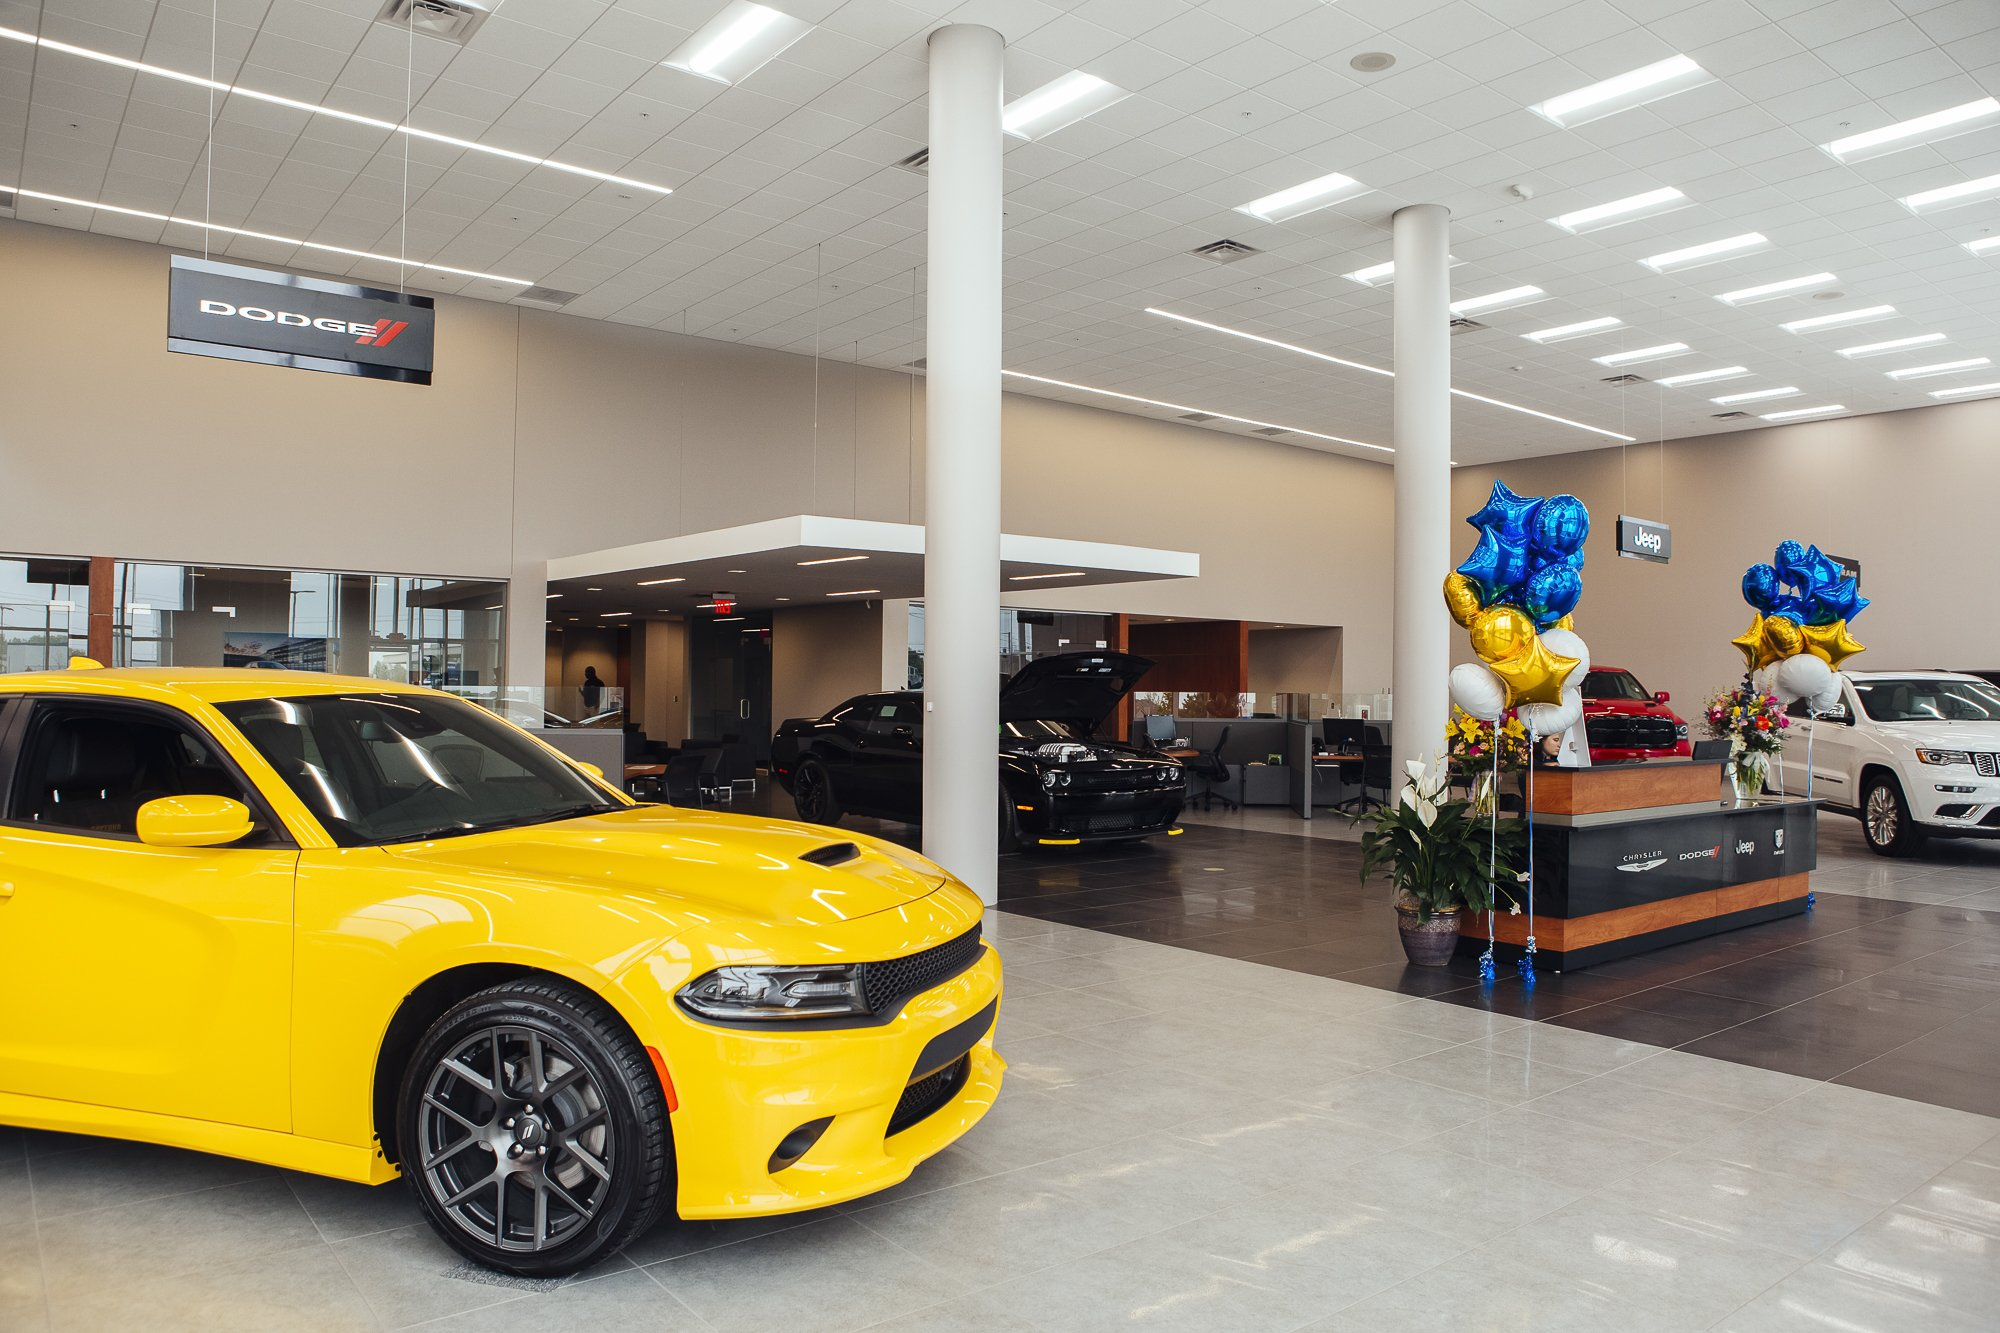 Bill Estes car dealership Brownsburg IN commercial photography session